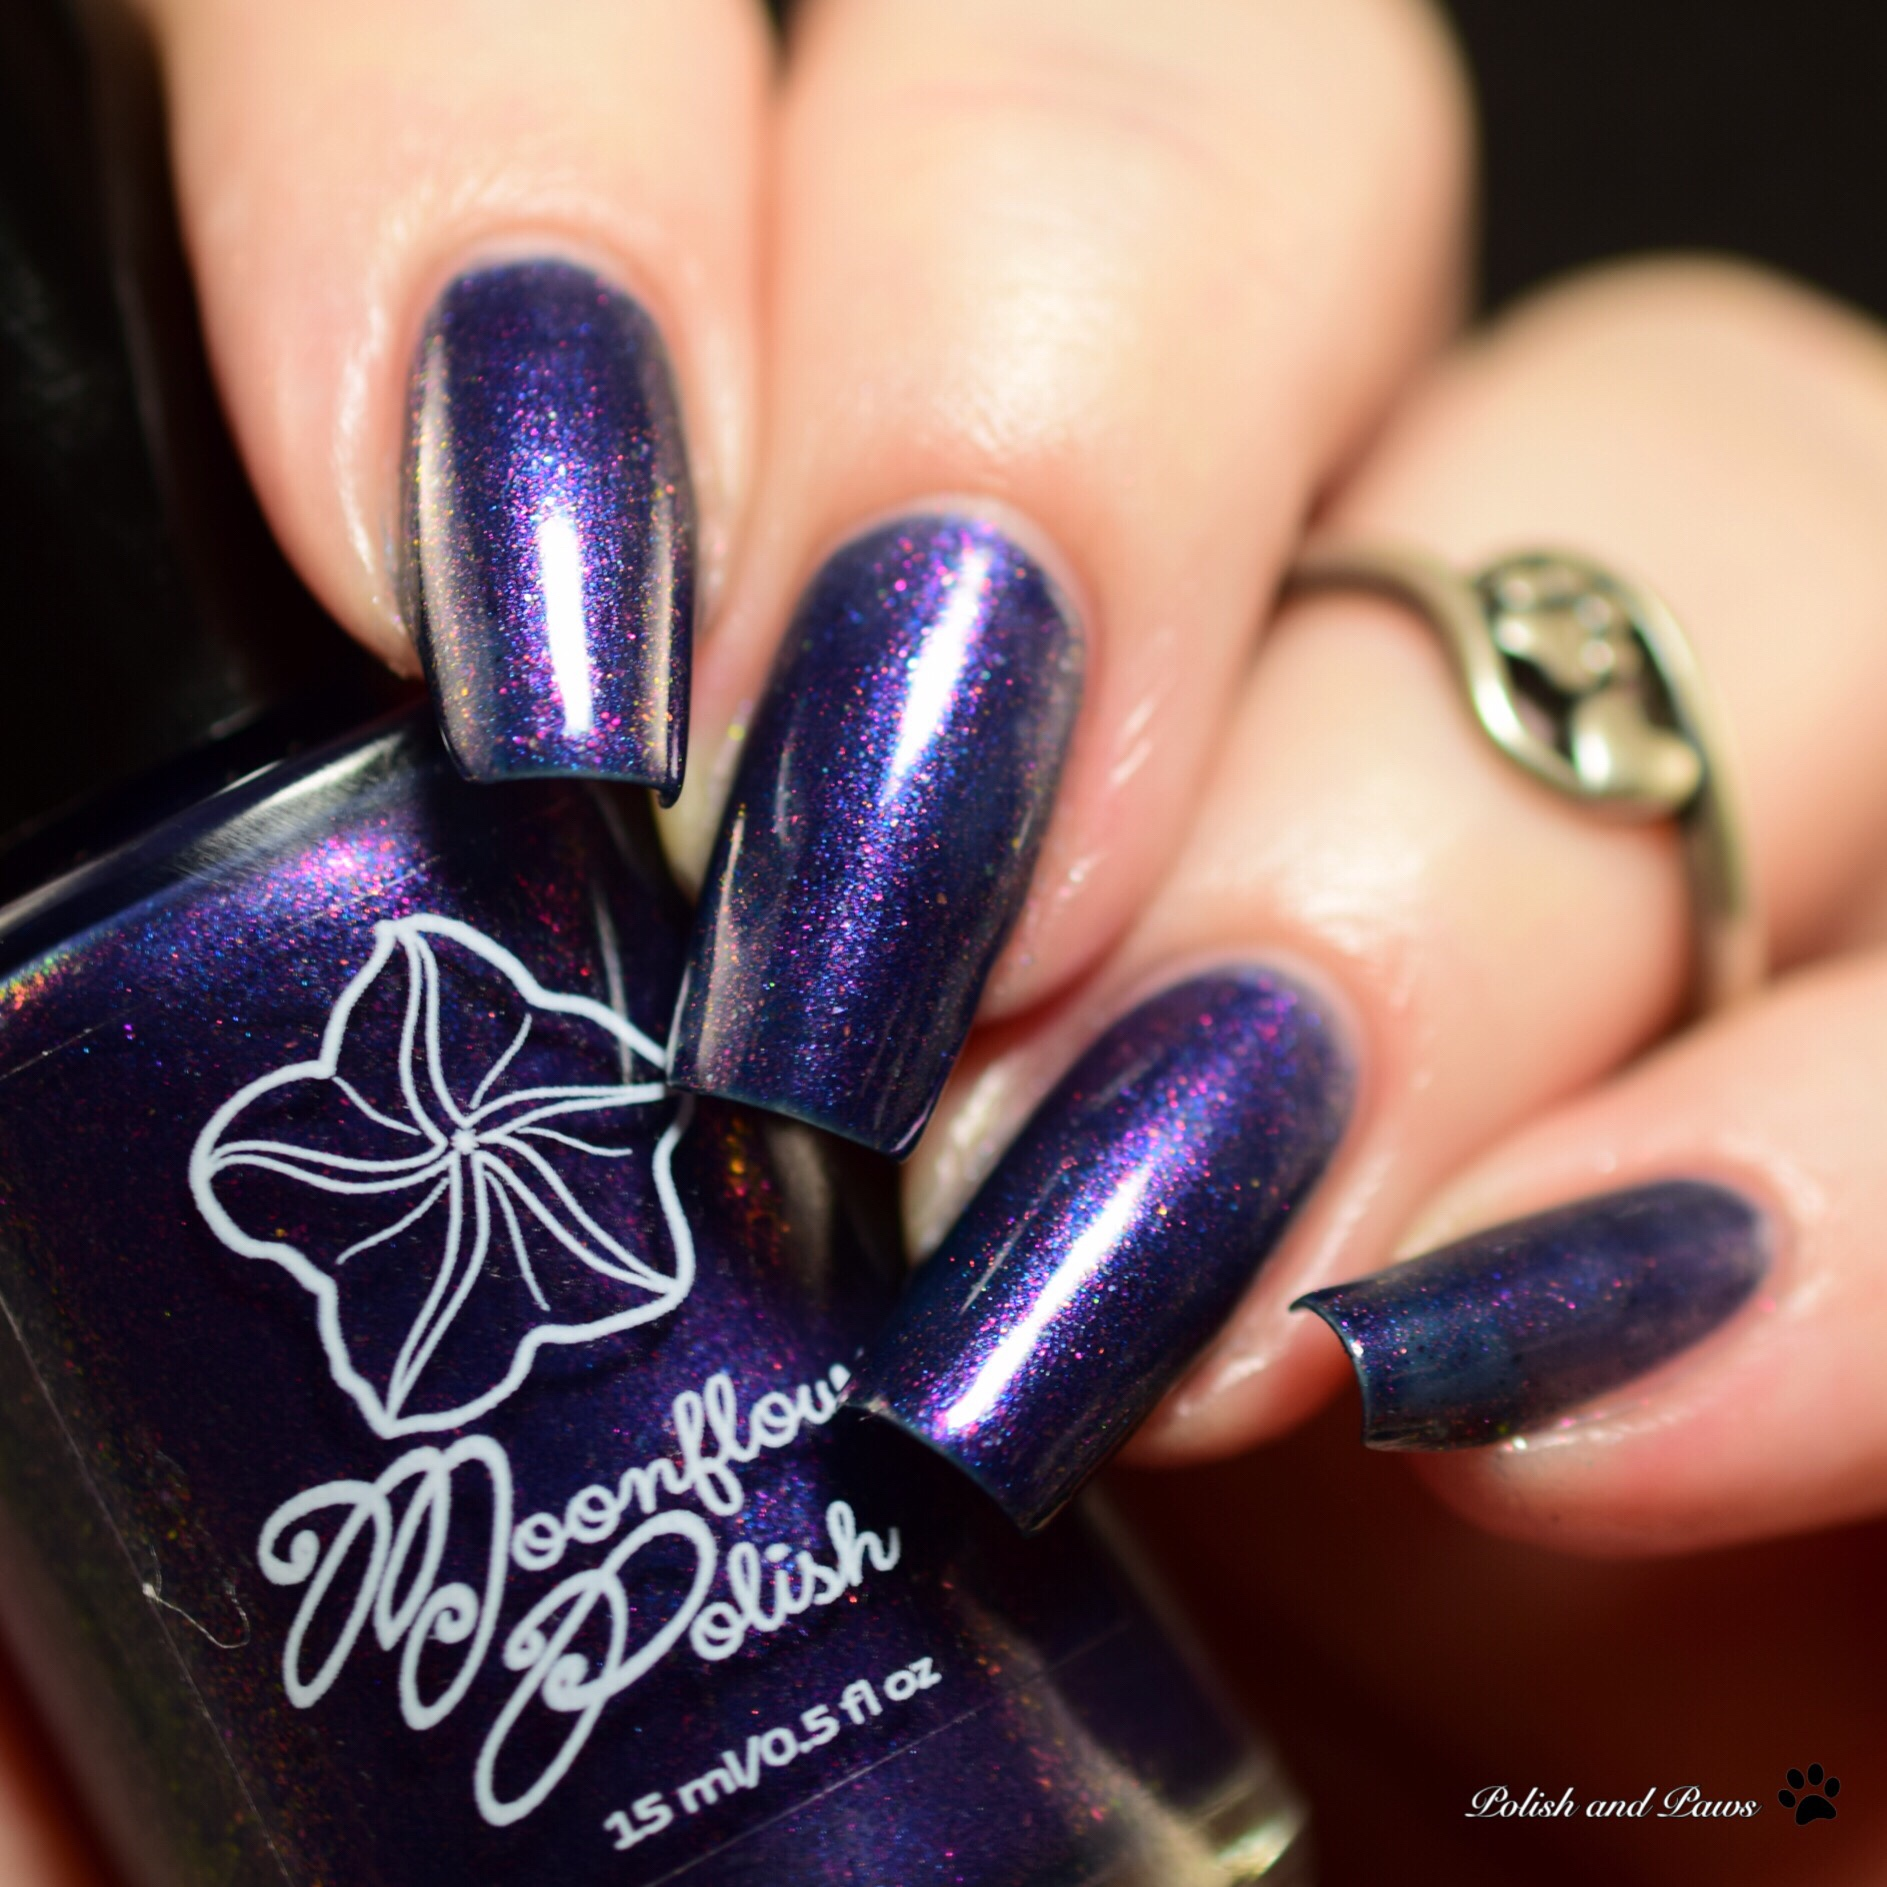 Moonflower Polish Do You Love Me